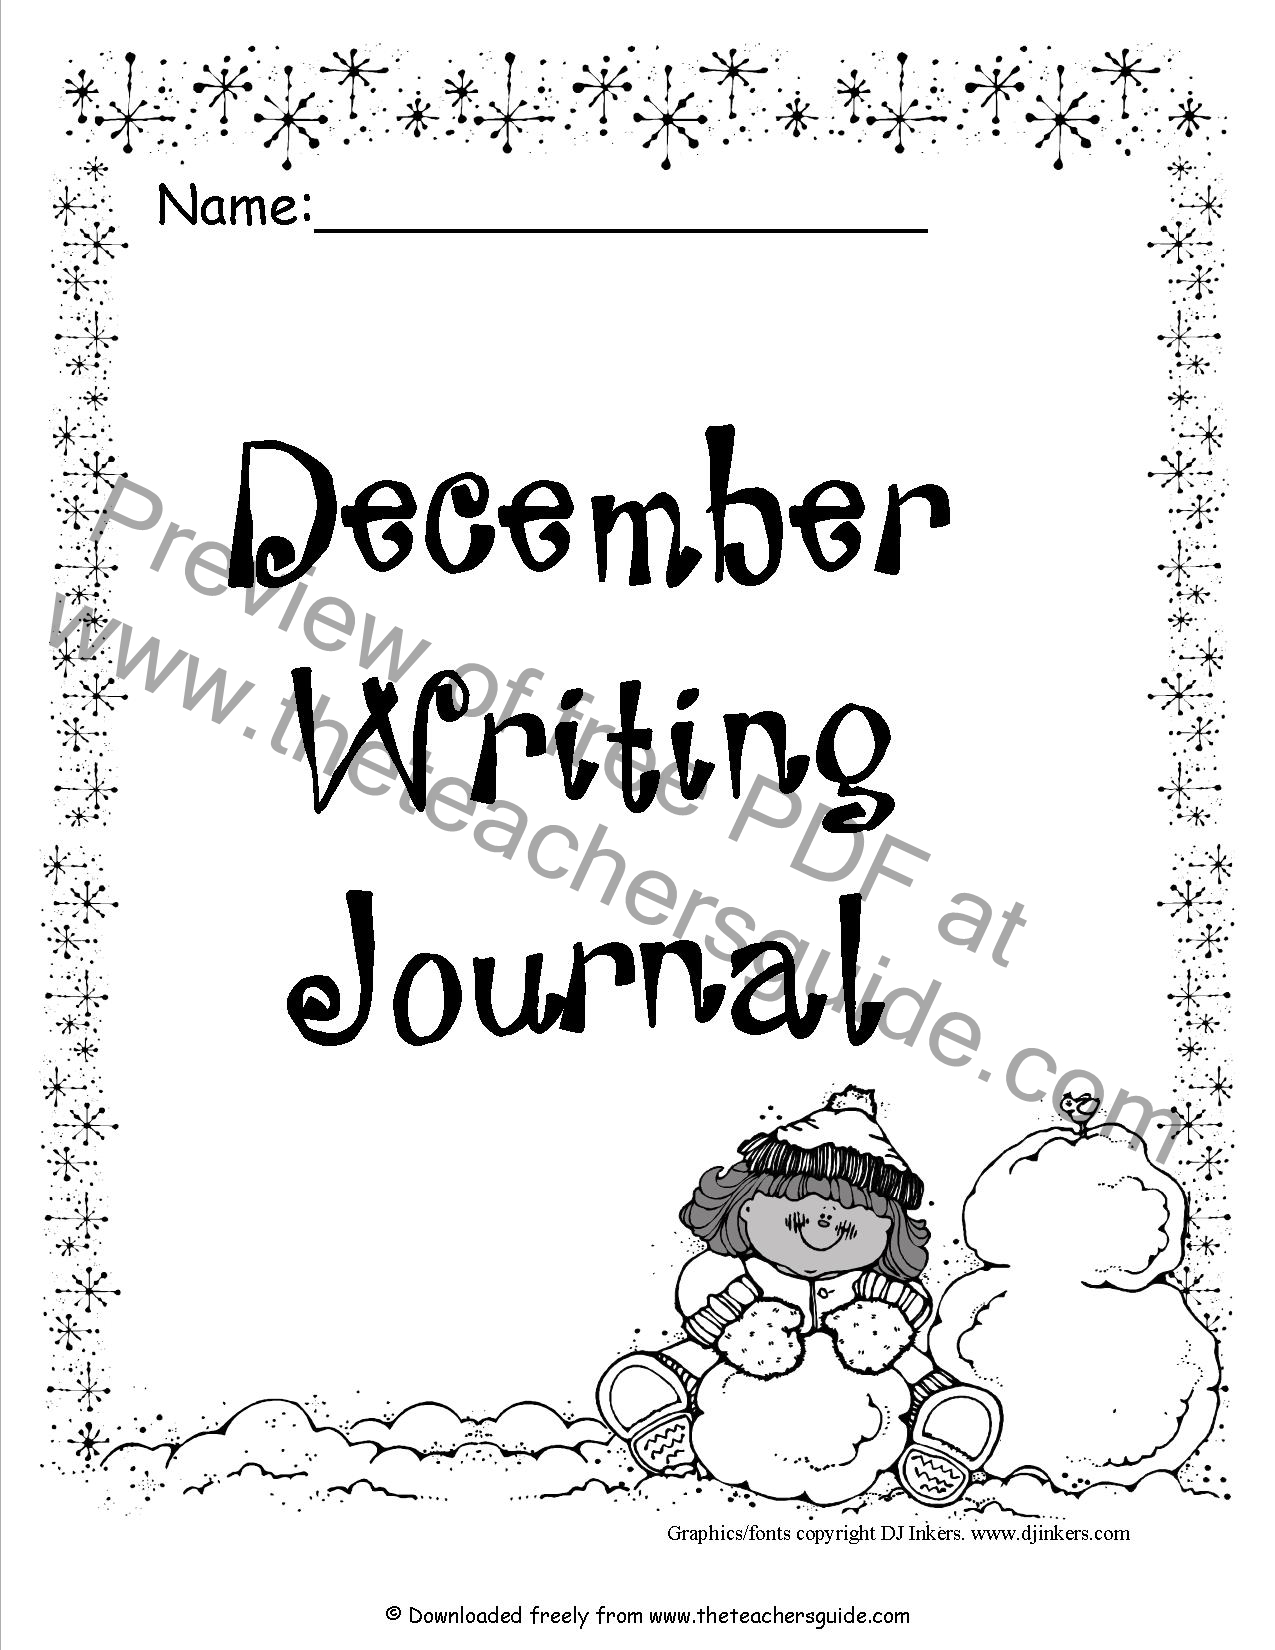 December Holidays, Lesson Plans, and Themes